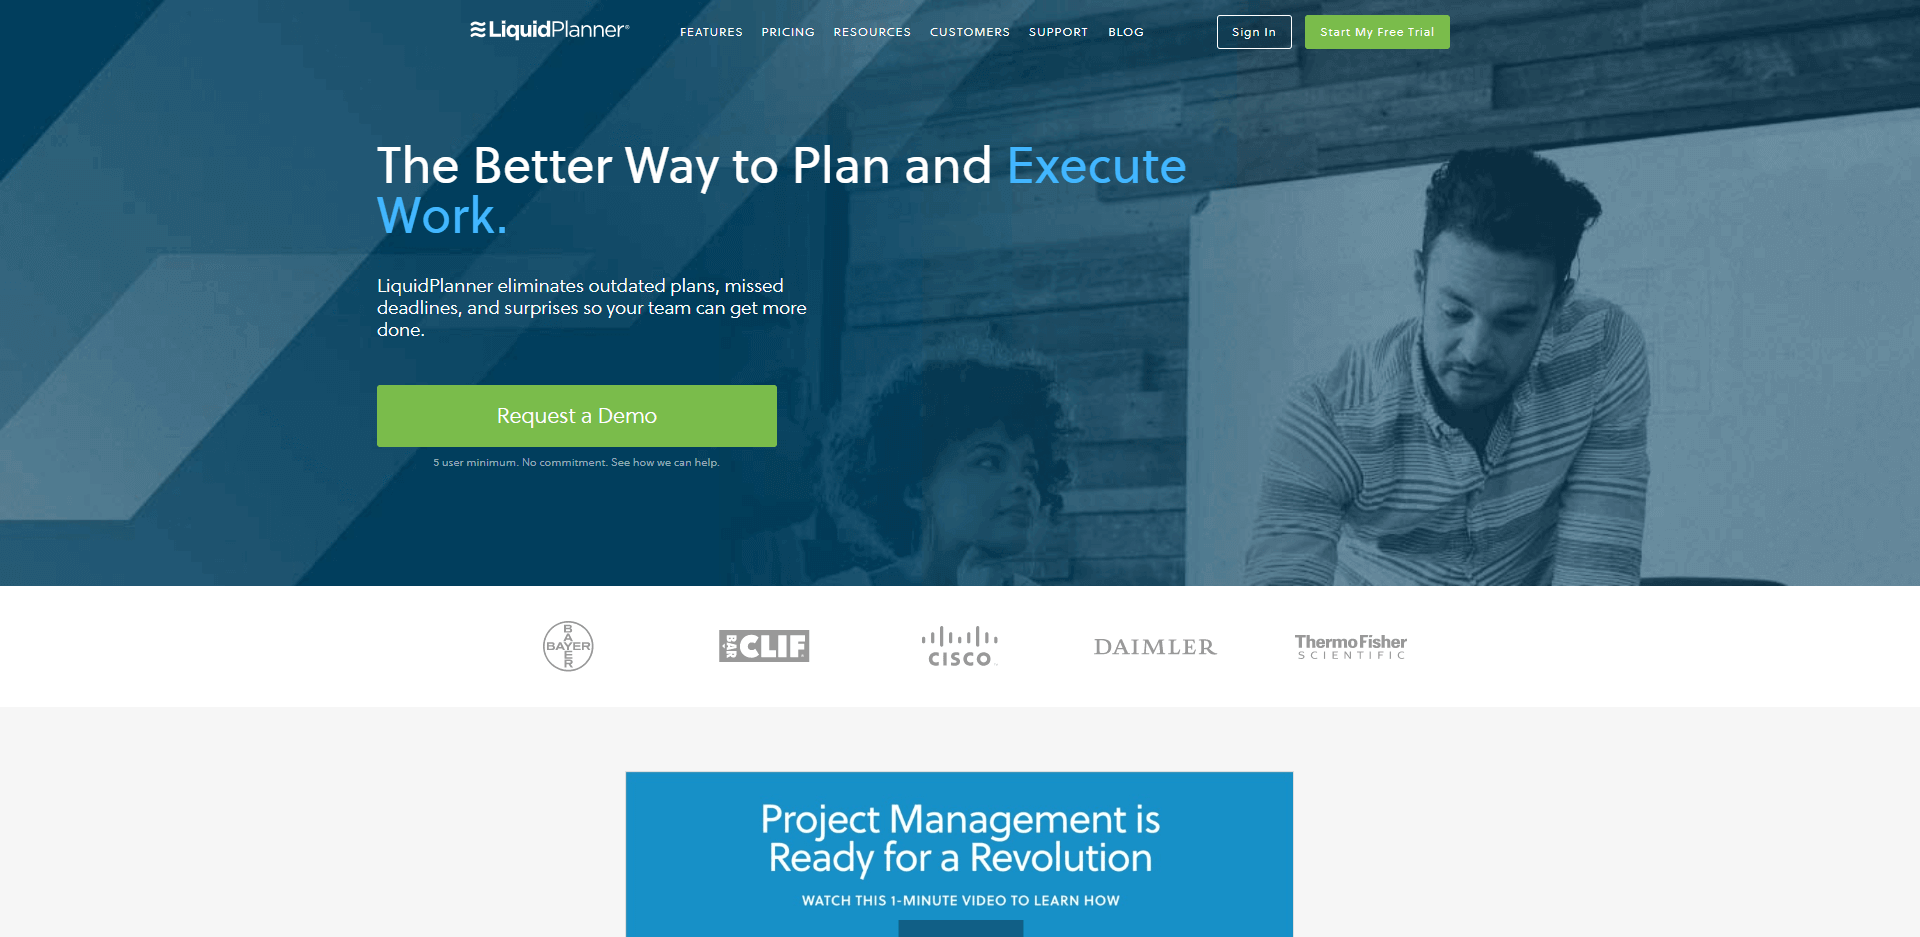 Liquid Planner is the better way to plan and execute work